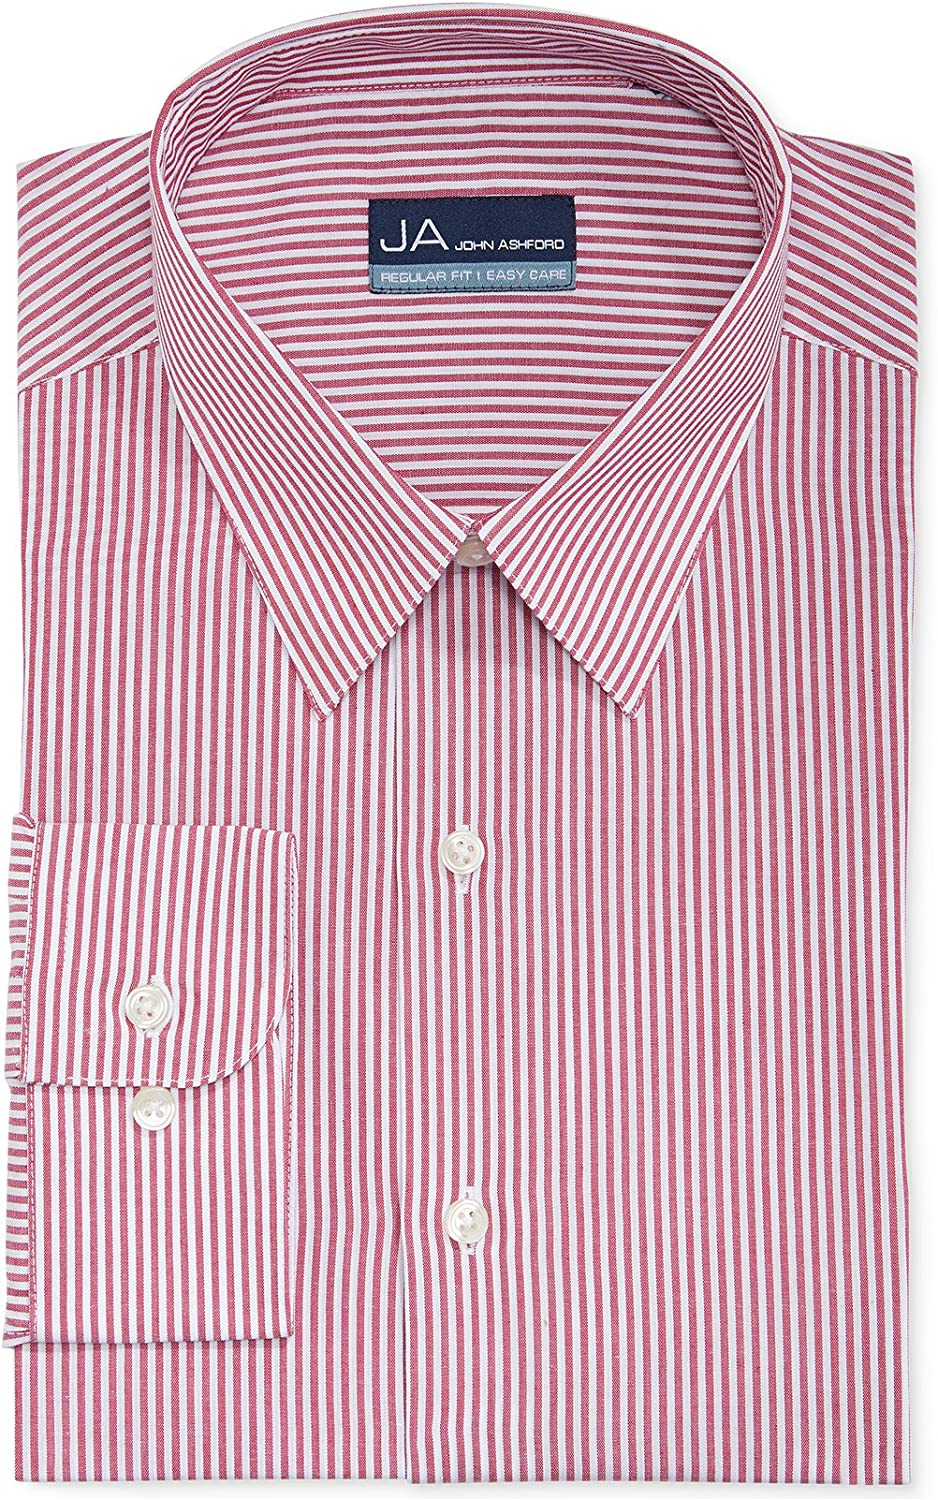 John Ashford Mens Regular Fit Striped Dress Shirt